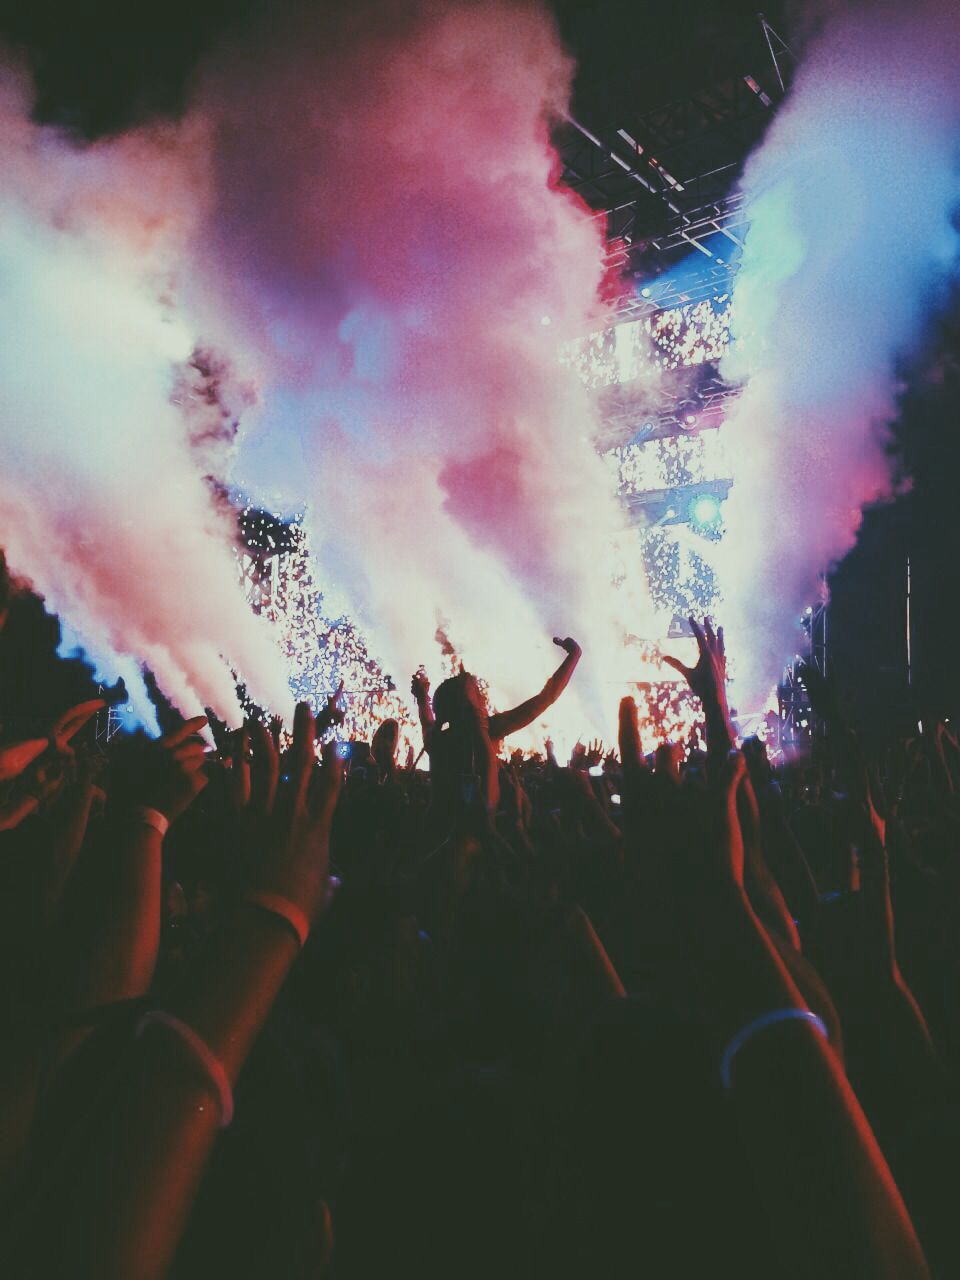 background, beautiful, blue, boys, concert, cool, dark, evening, girls, humans, like, mans, nice, night, party, people, photo, pink, smoke, summer, sweet, tu, violet, розовый, мило, дым, голубой, синий, ночь, women's, фиолетовый, фон, темно